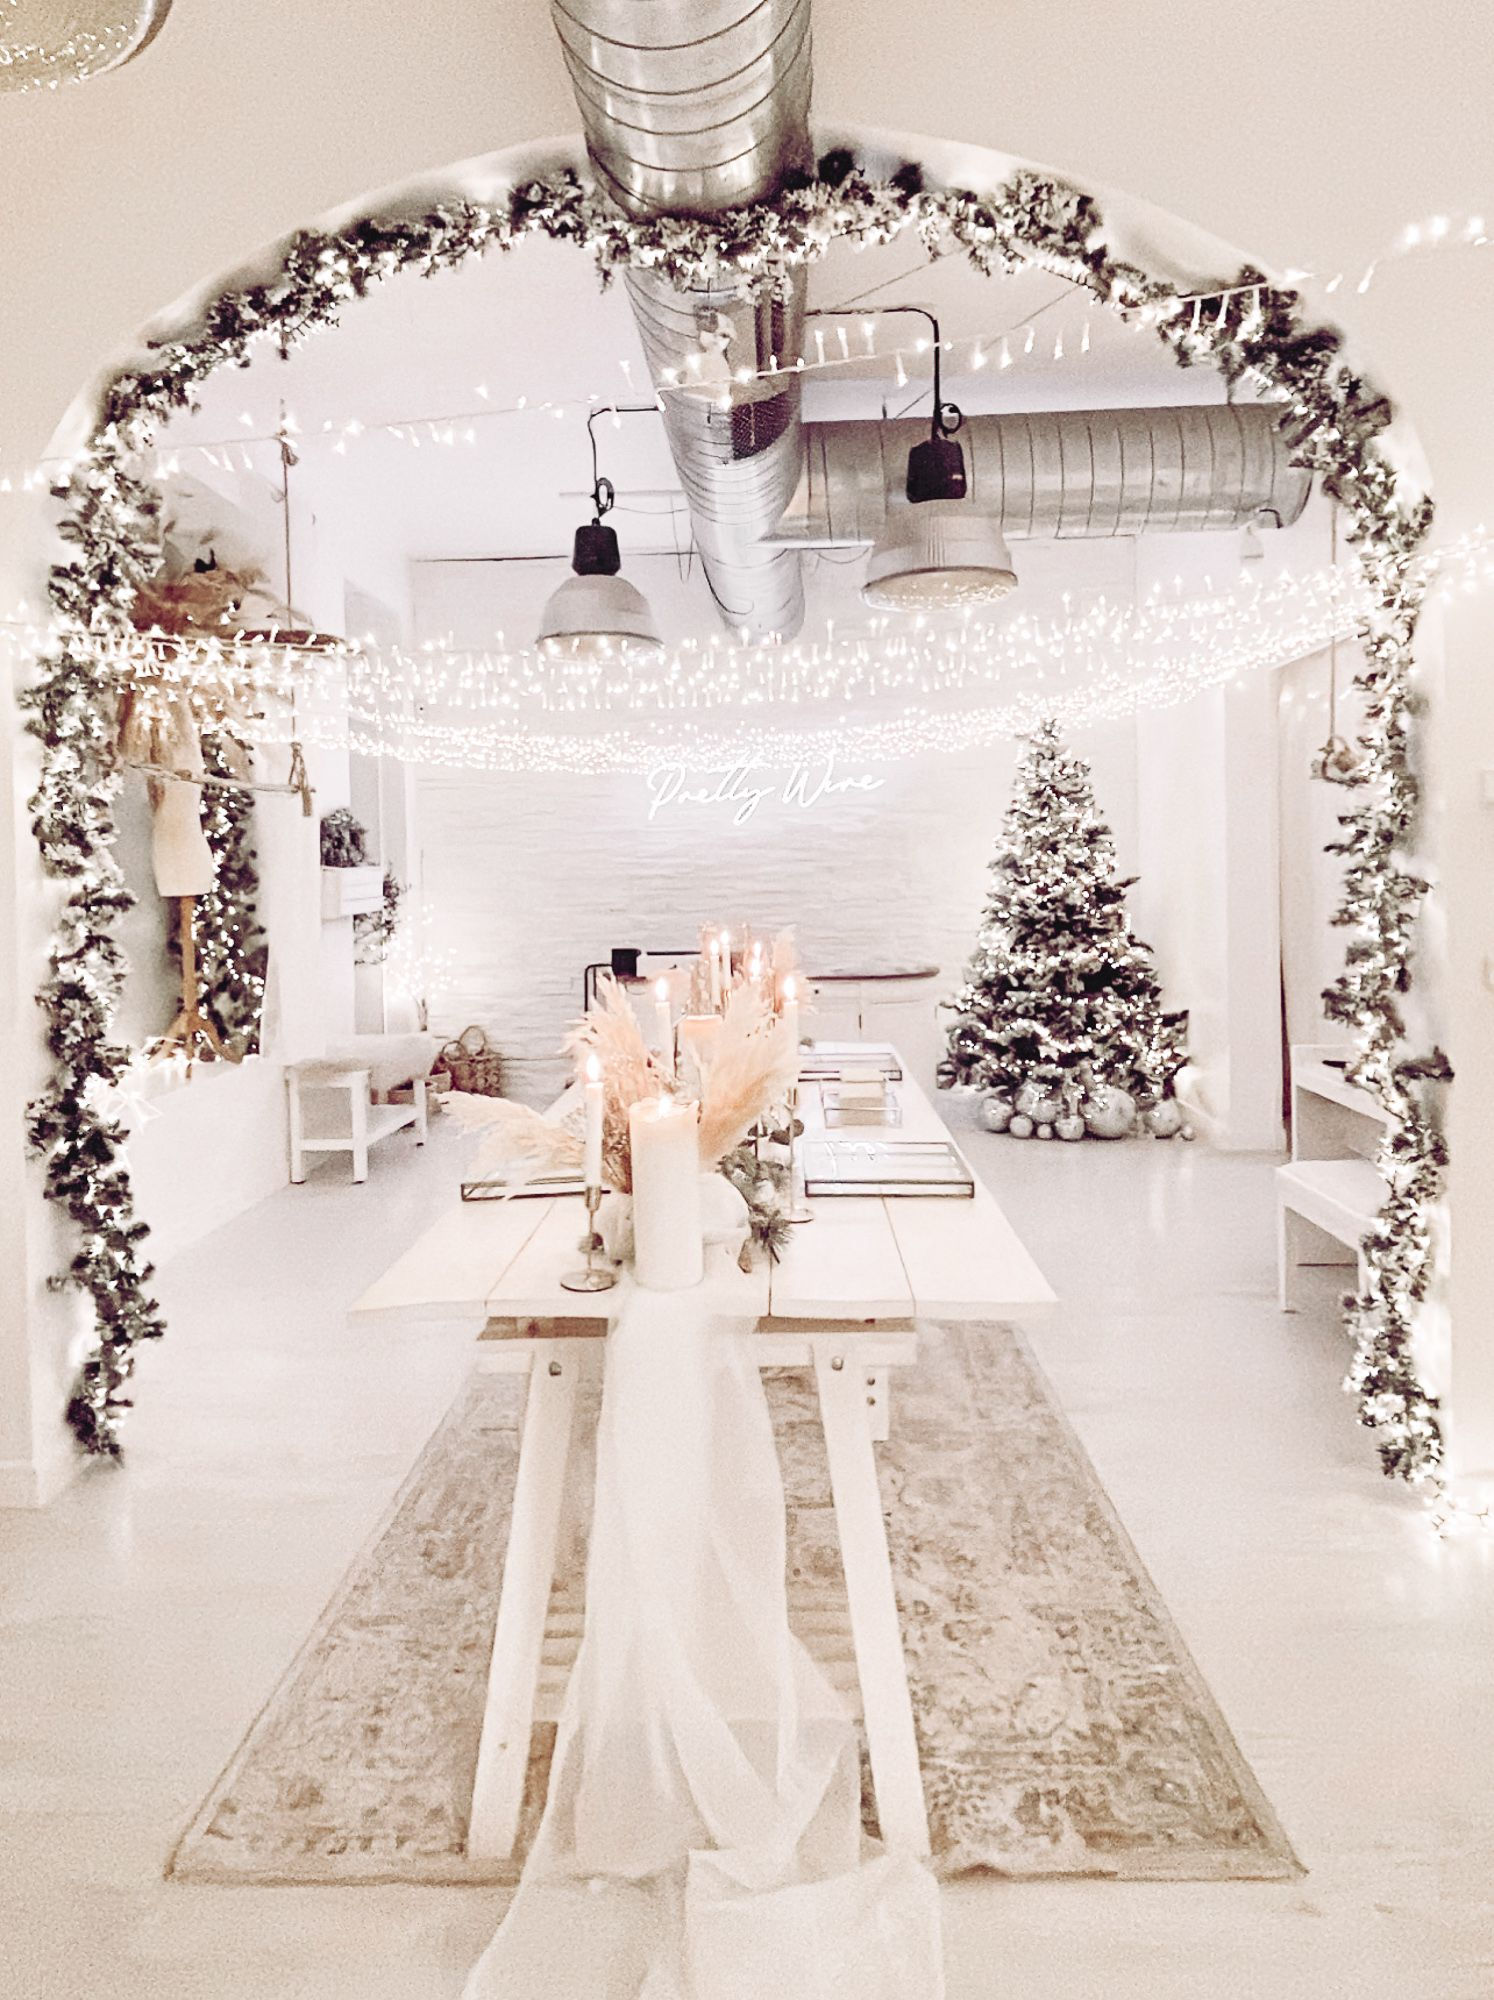 le magasin concept store pretty wire amiens pretty wire. Black Bedroom Furniture Sets. Home Design Ideas